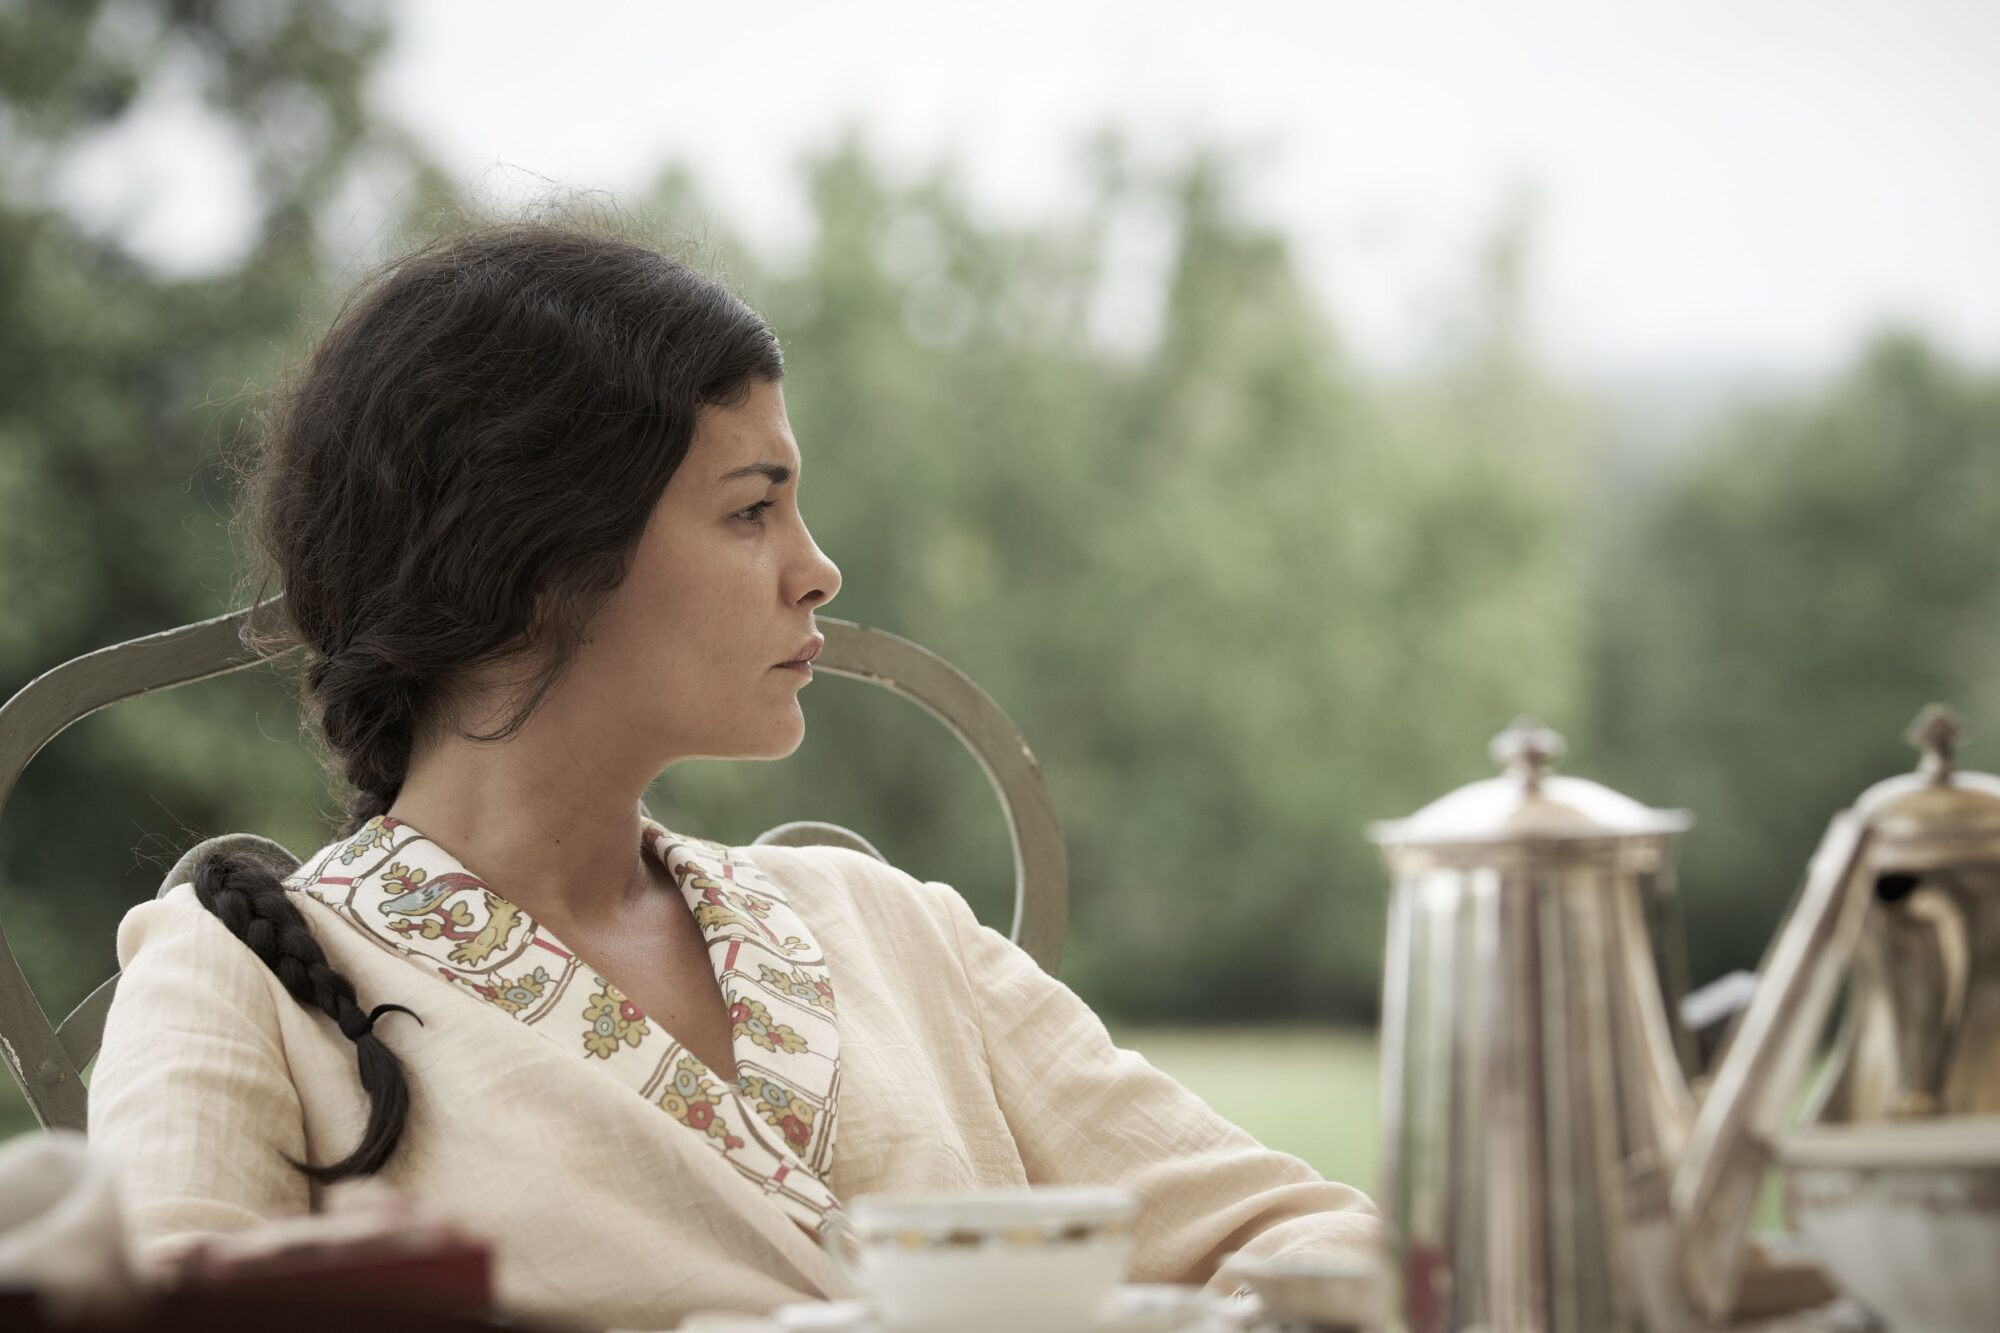 Interview: Audrey Tautou on Thérèse, Claude Miller, and More